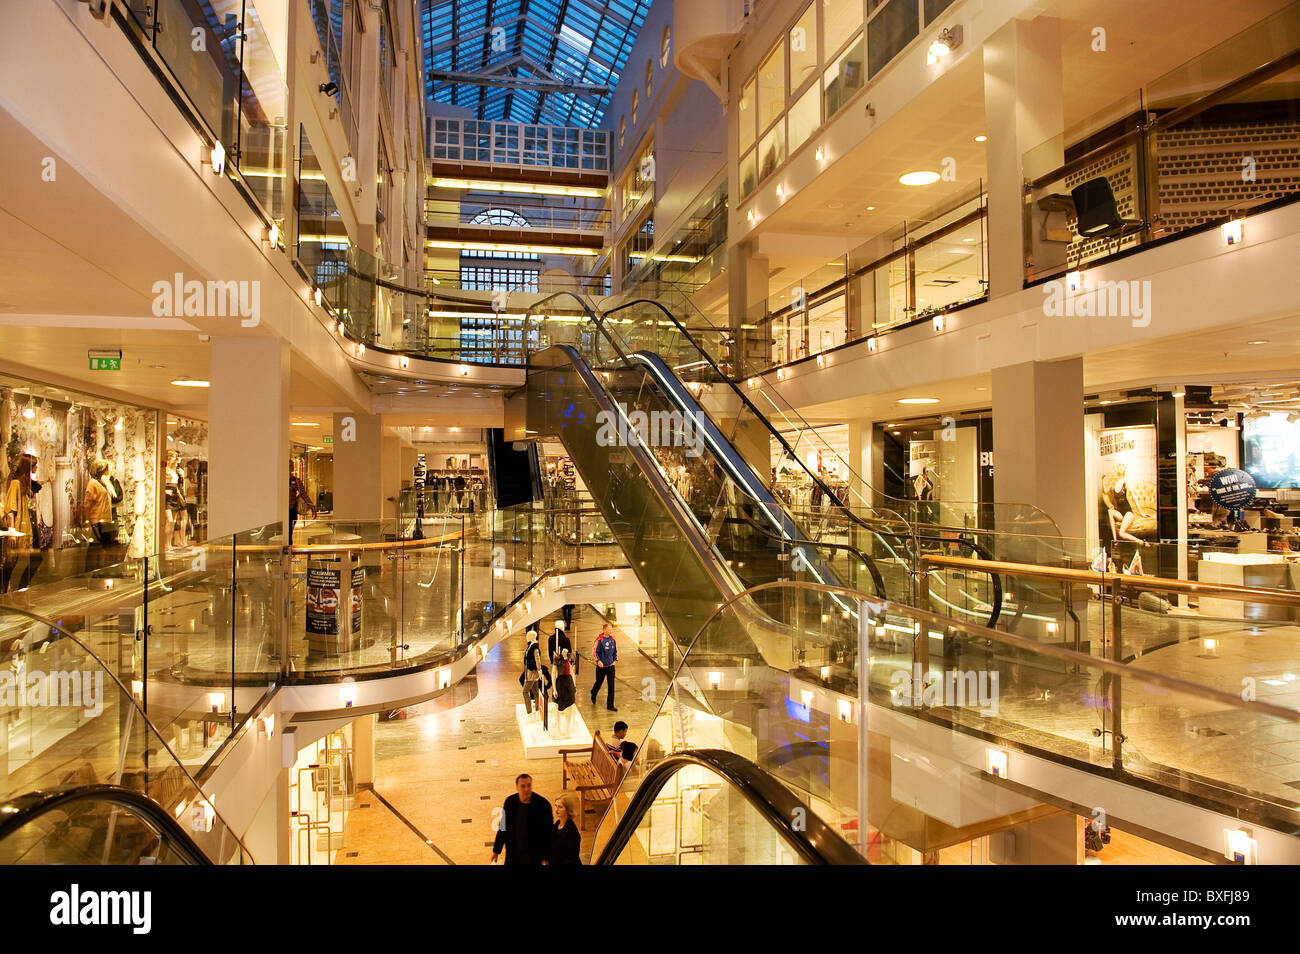 Aker Brygge shopping mall, Oslo Norway - Stock Image